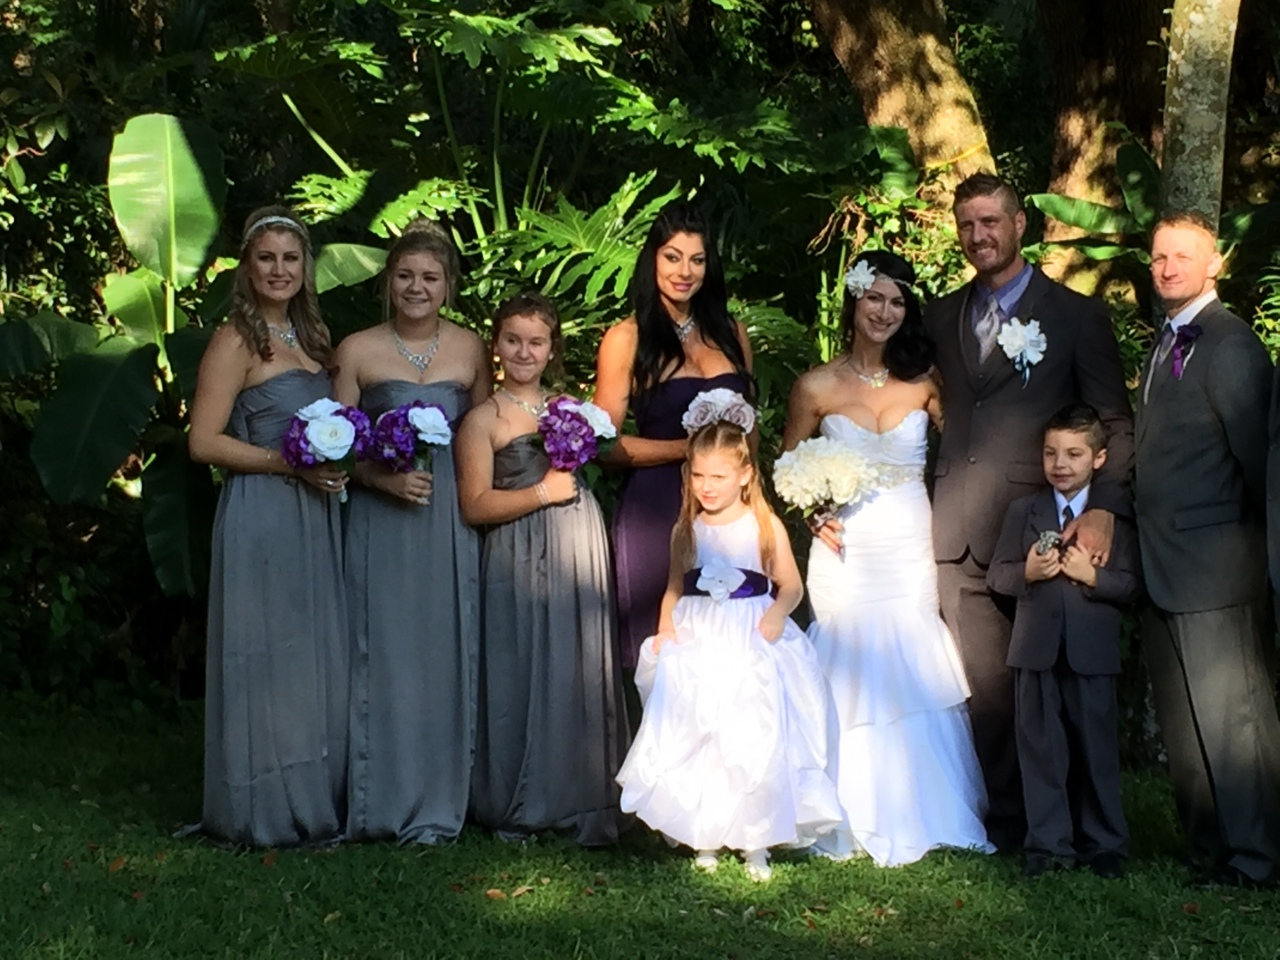 This is one of my best friends marriage in USA in the state of Florida.